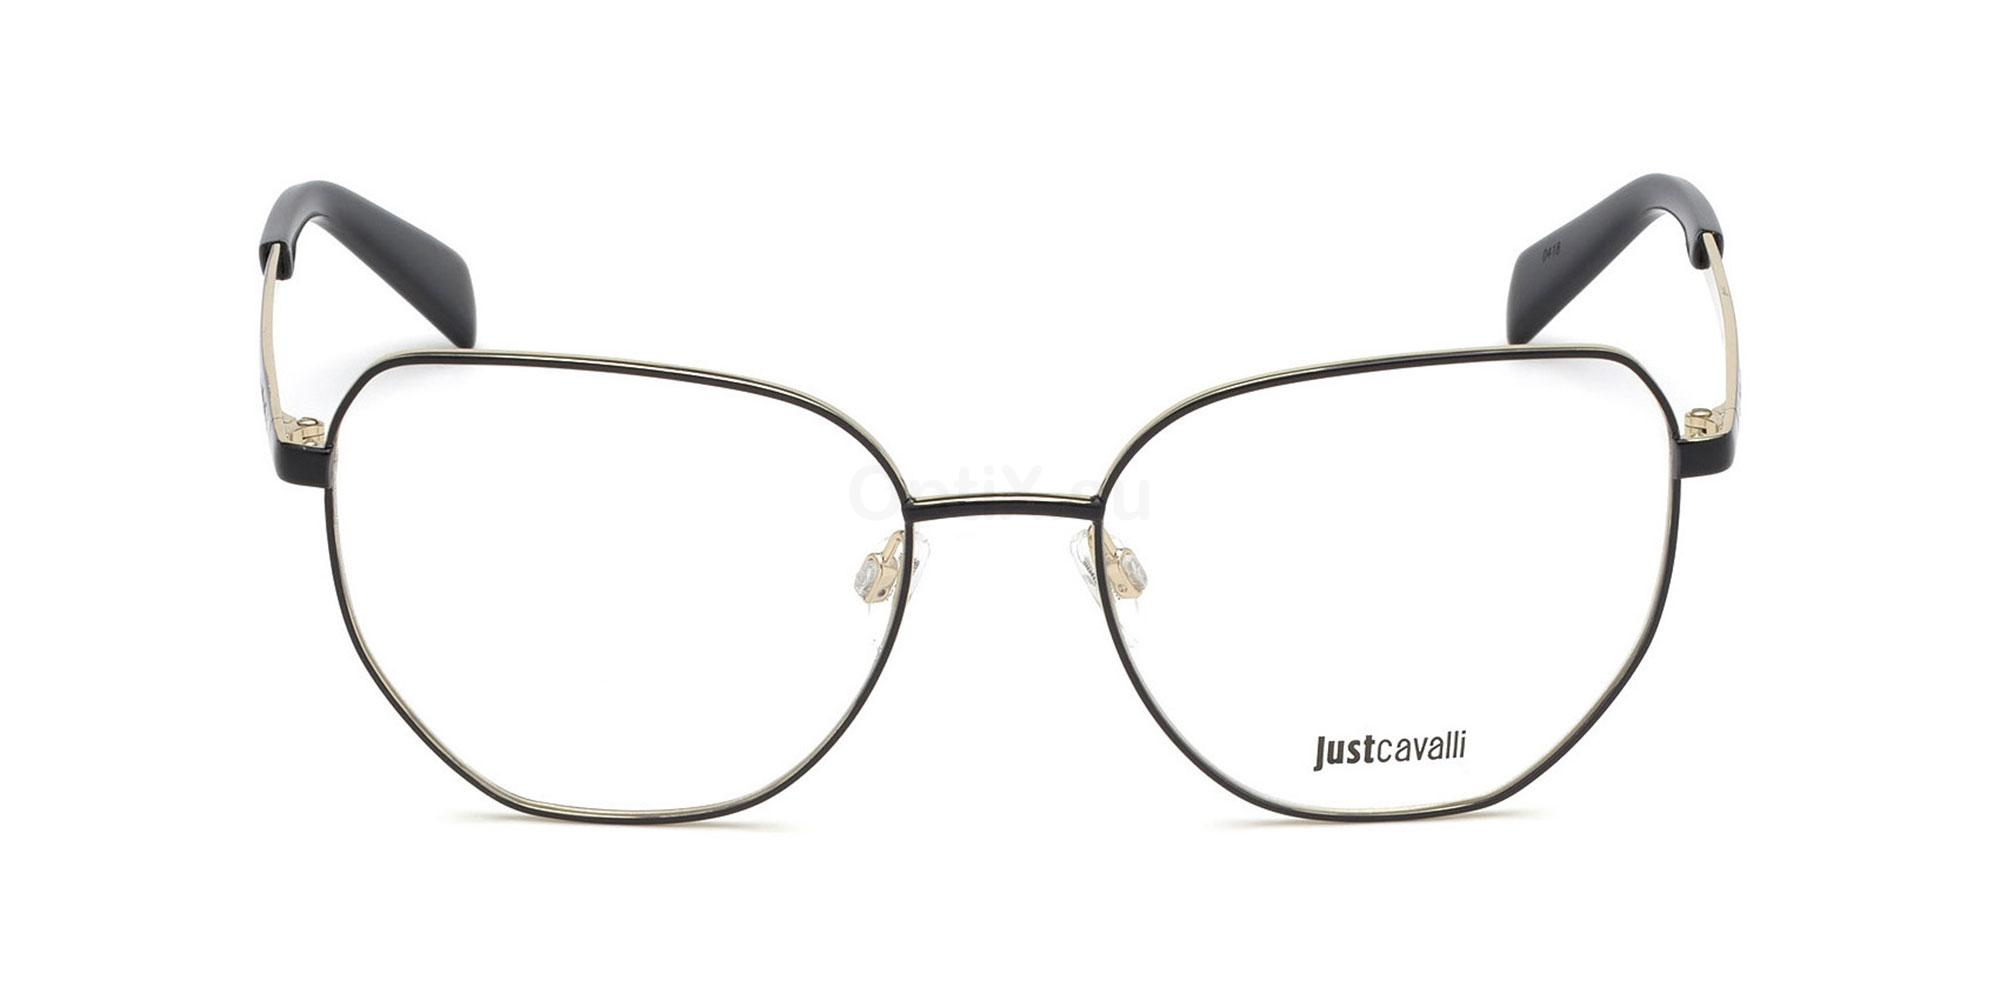 005 JC0884 Glasses, Just Cavalli